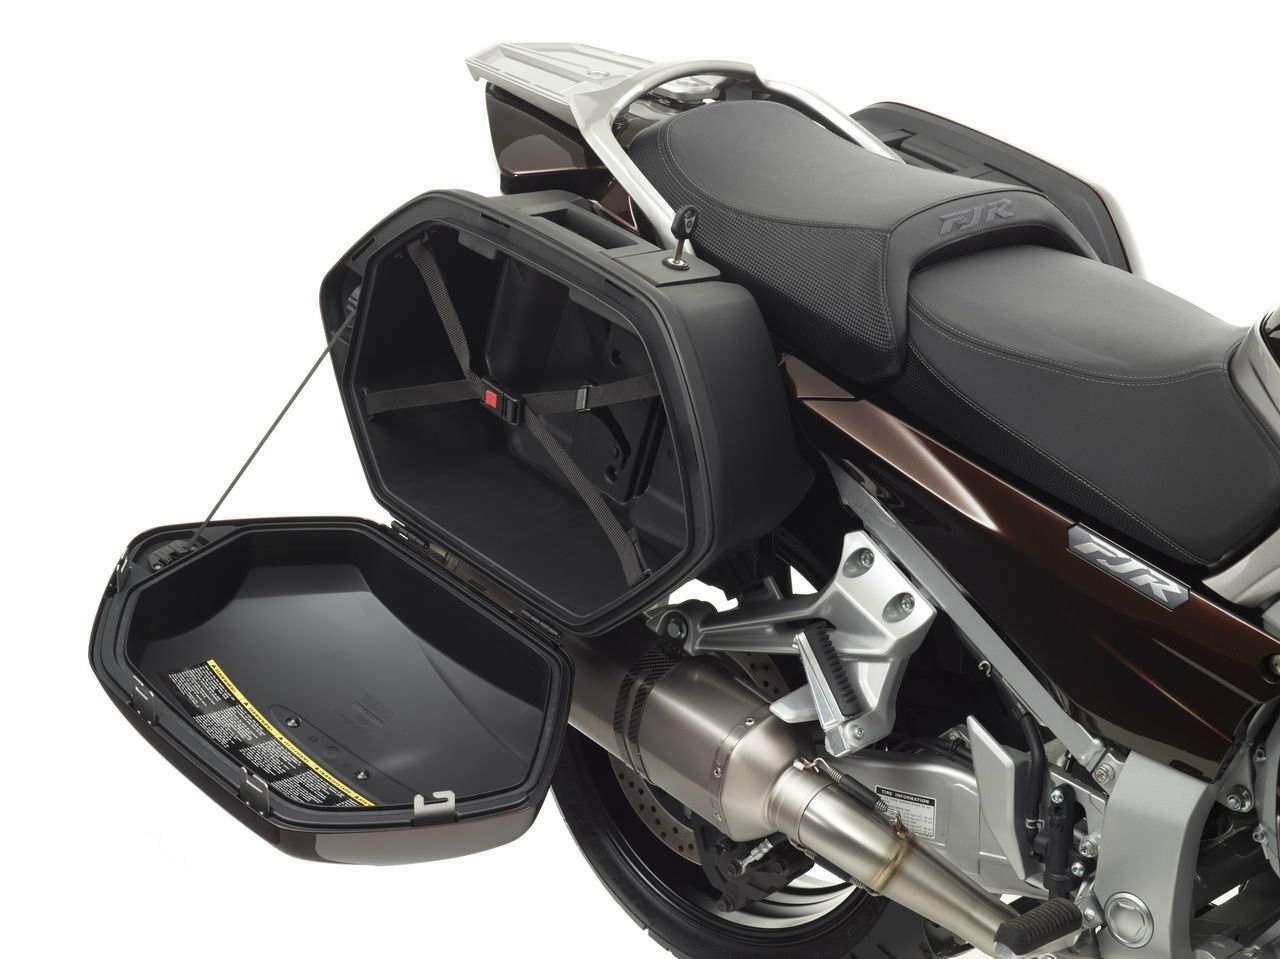 Peachy Yamaha Fjr1300 Caraccident5 Cool Chair Designs And Ideas Caraccident5Info